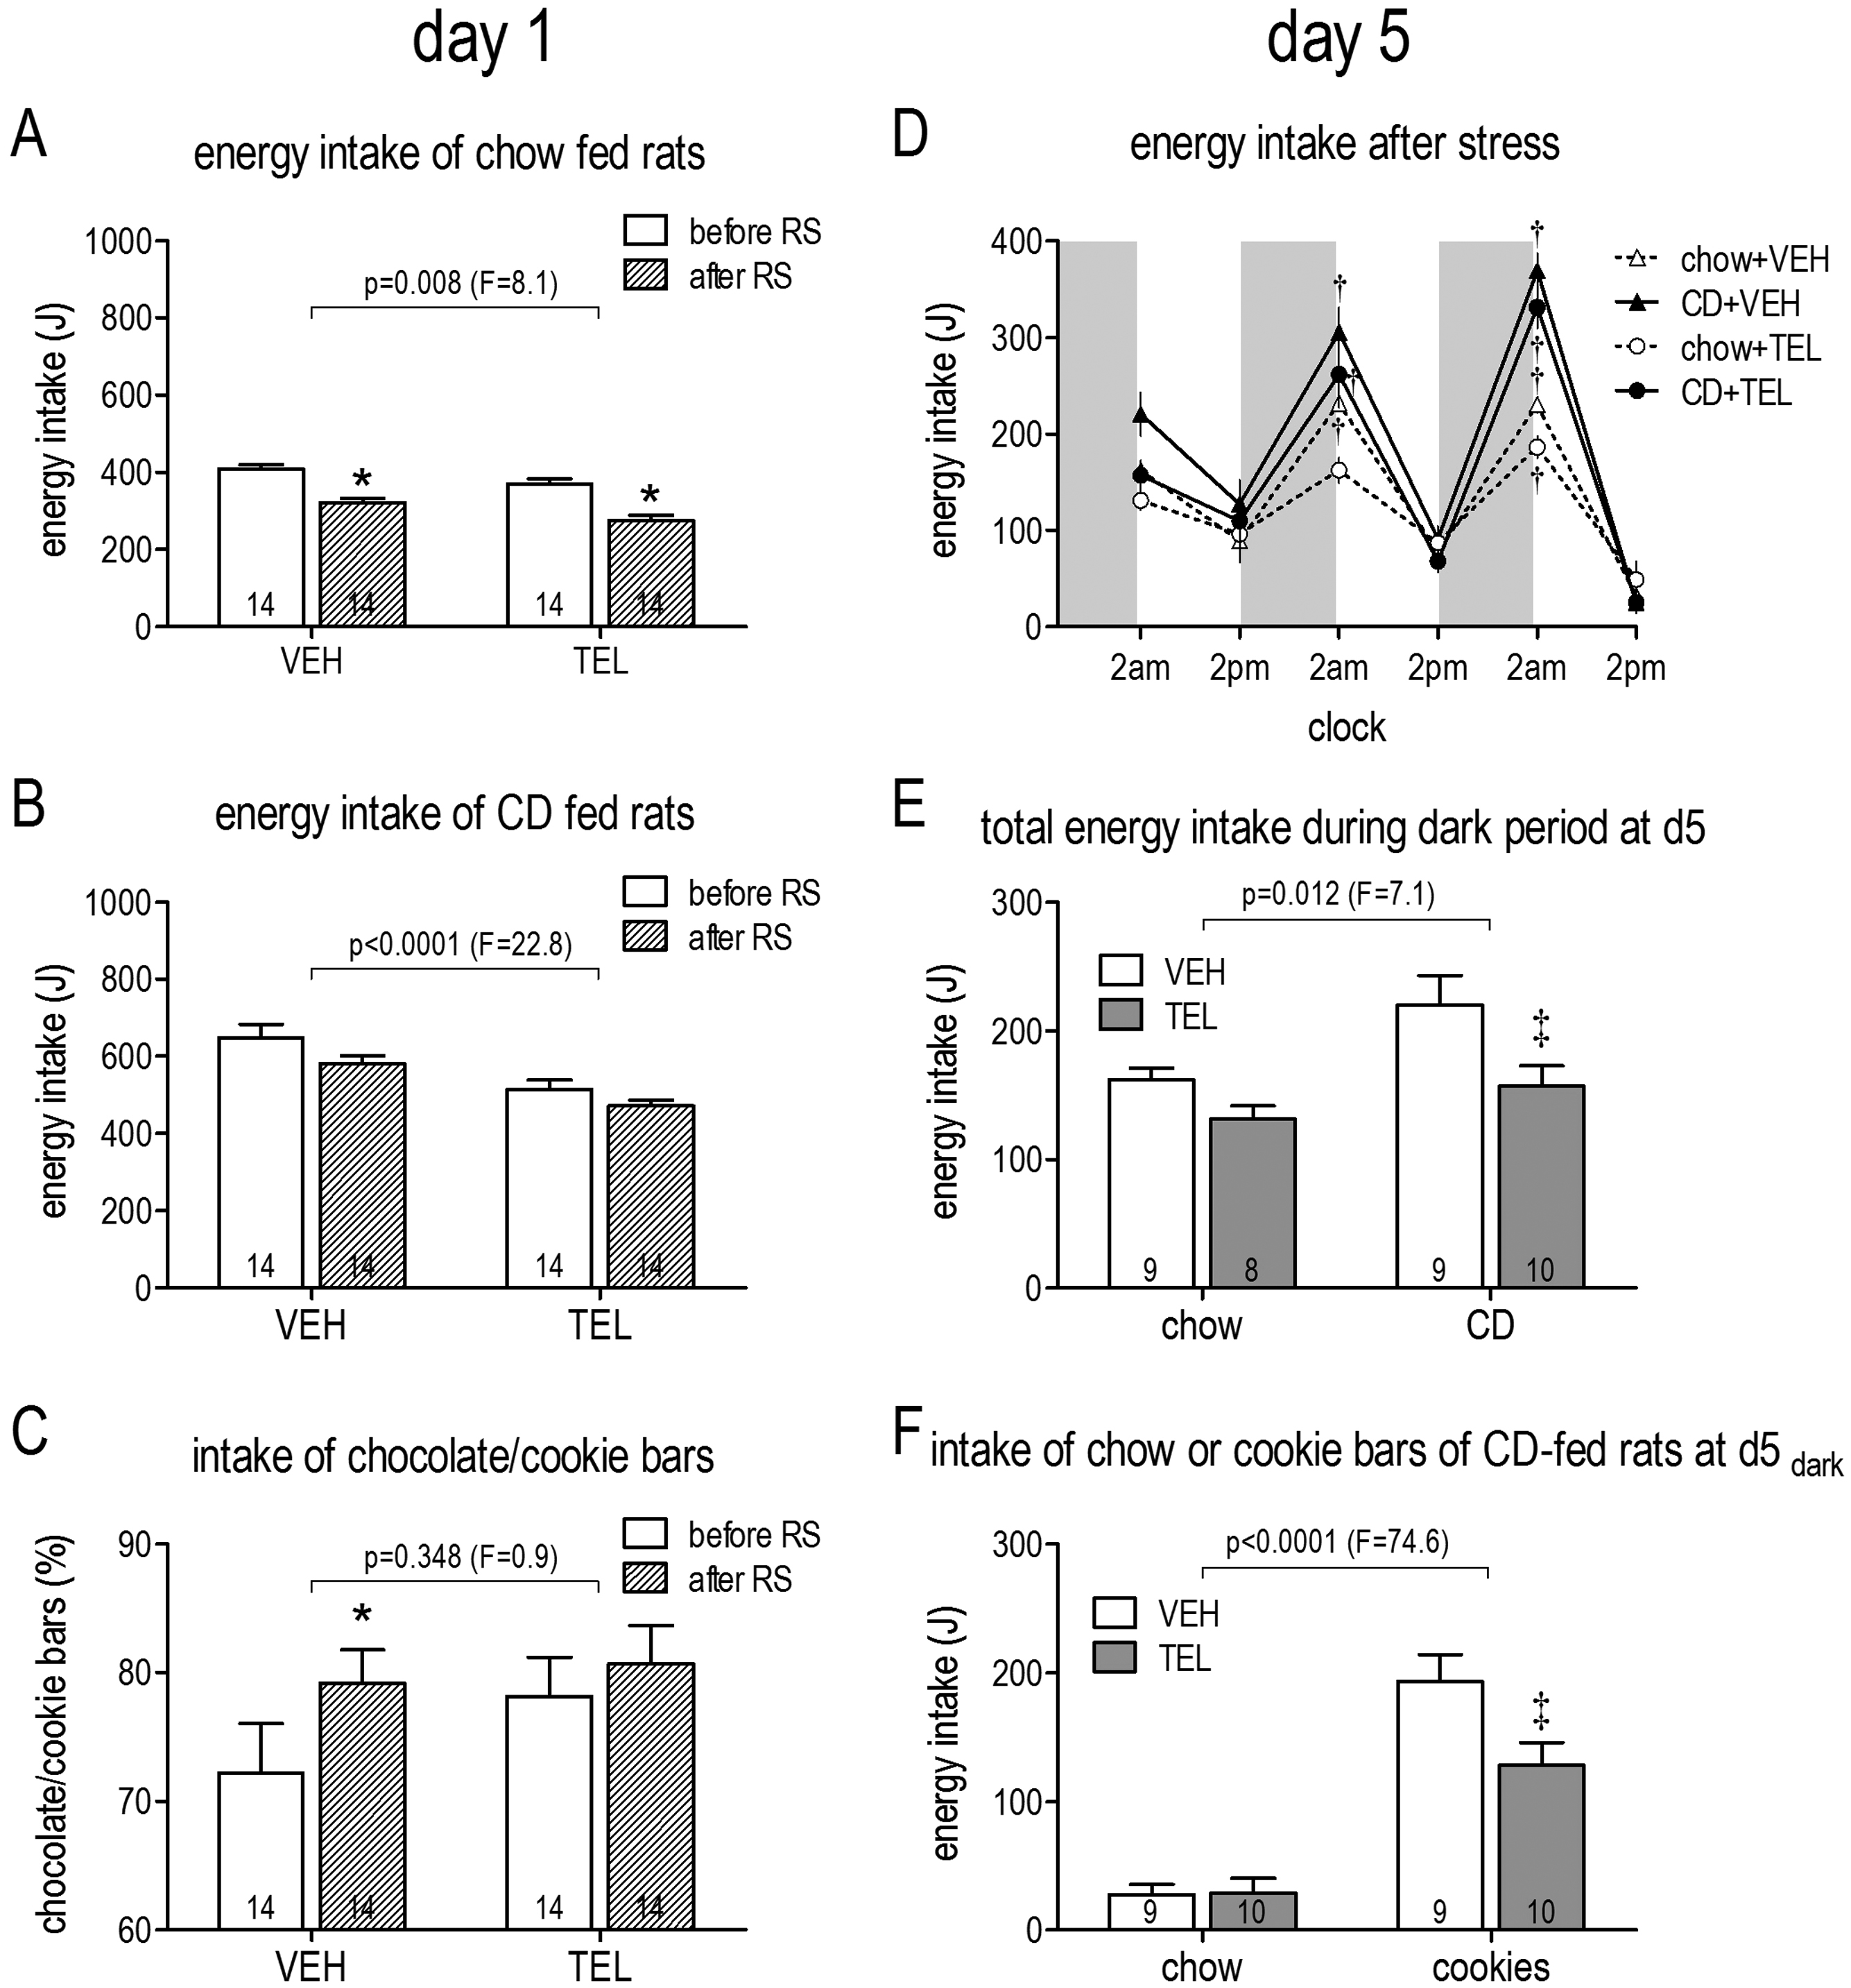 Influence of AT1 blockers on obesity and stress-induced eating of